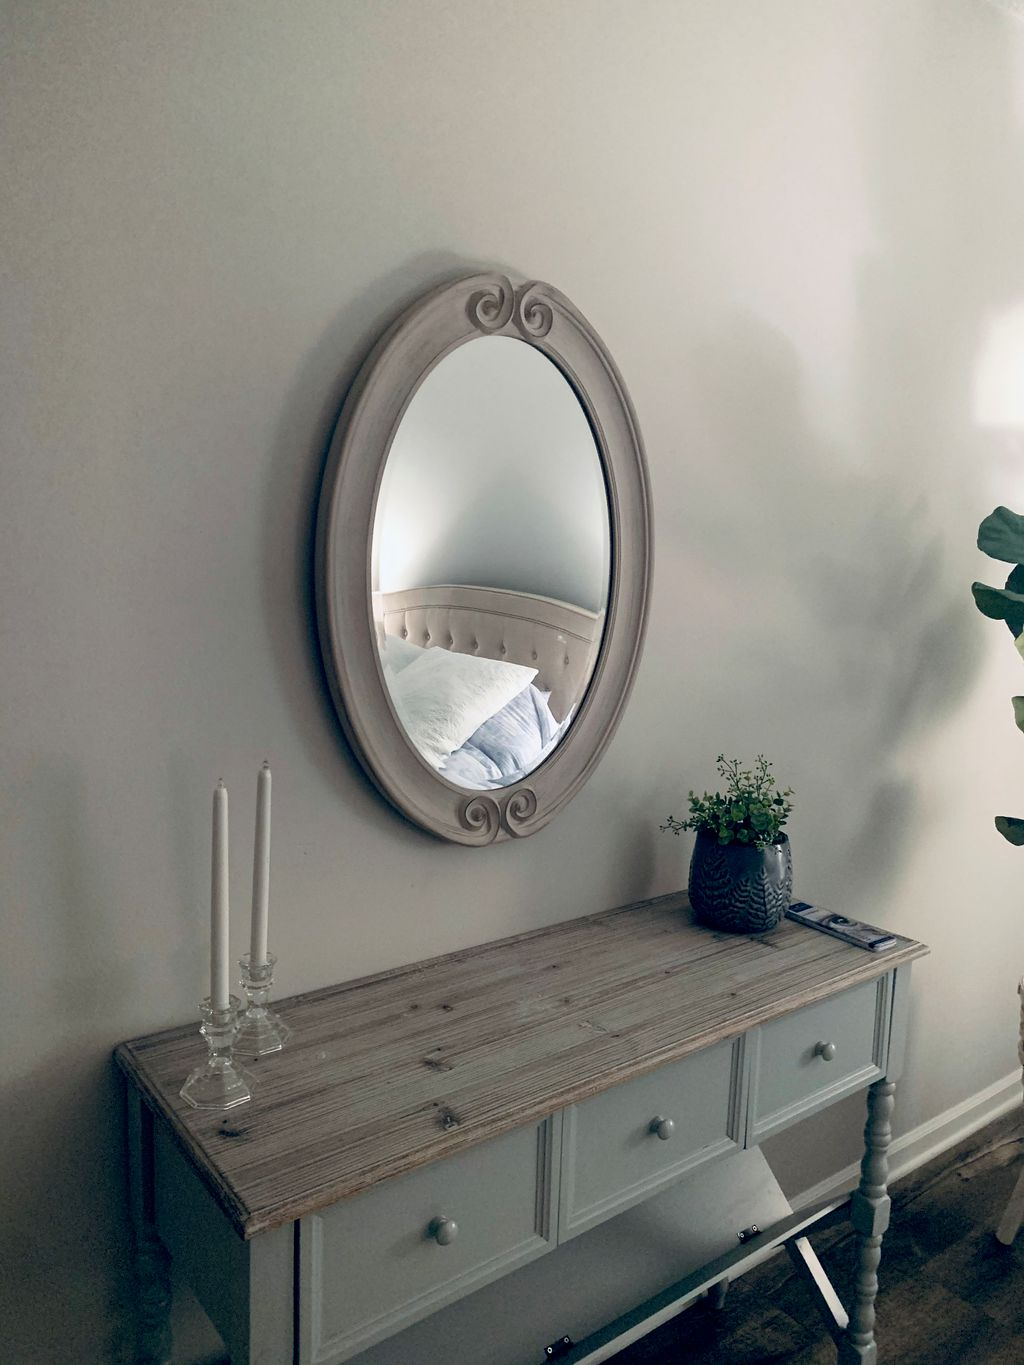 Bedroom and living room mirrors Installation